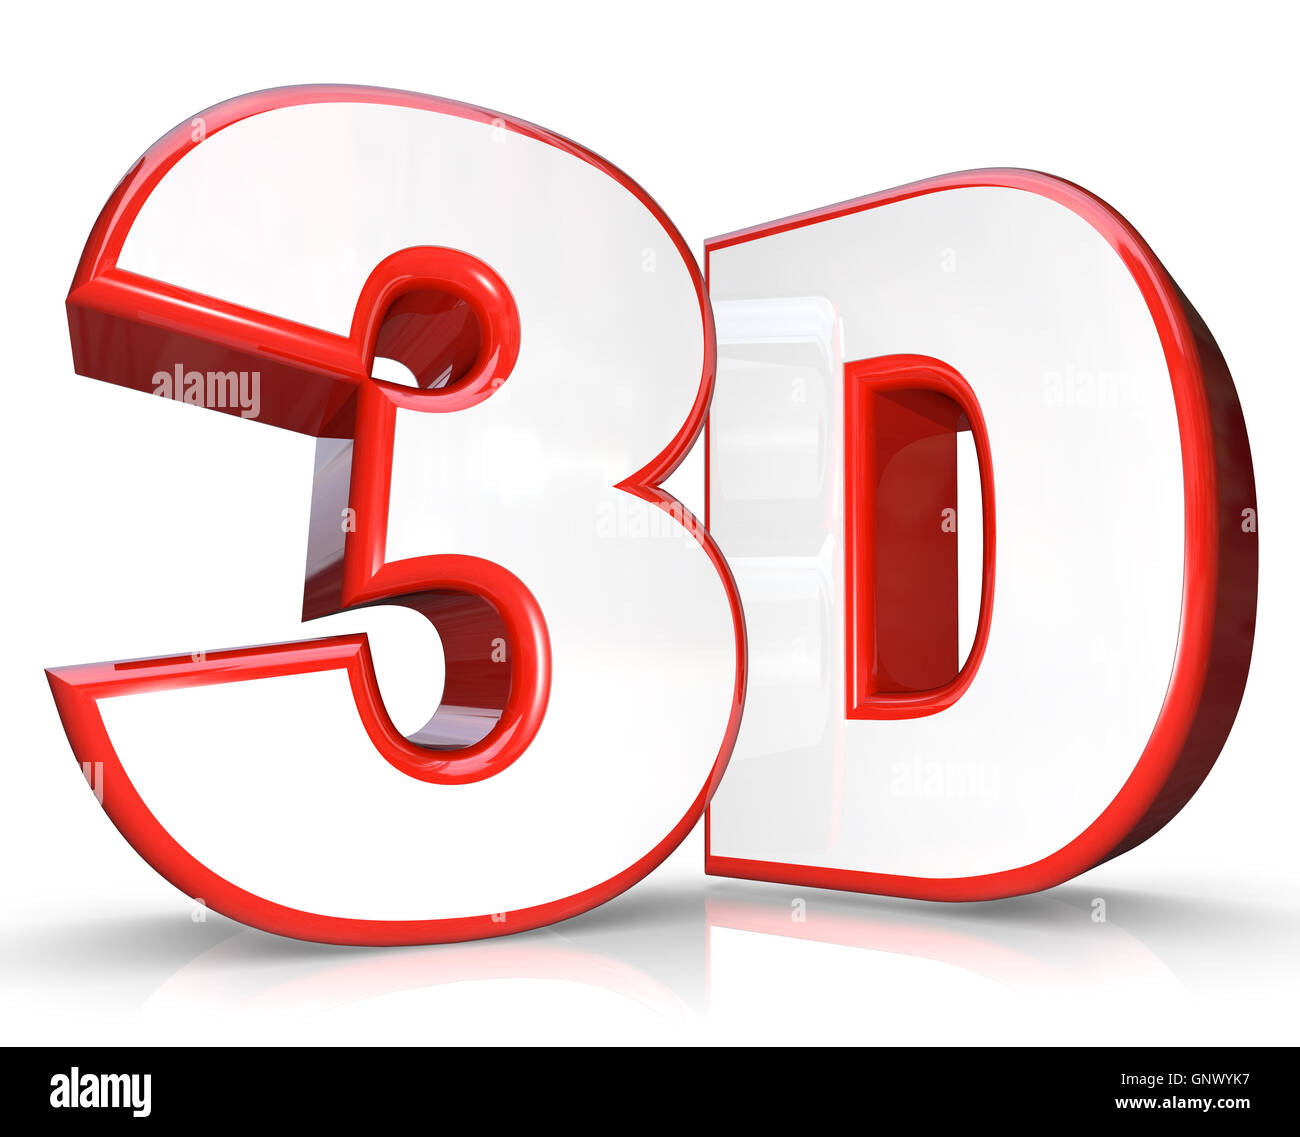 3D Red Letter and Number Three Dimensional Viewing - Stock Image